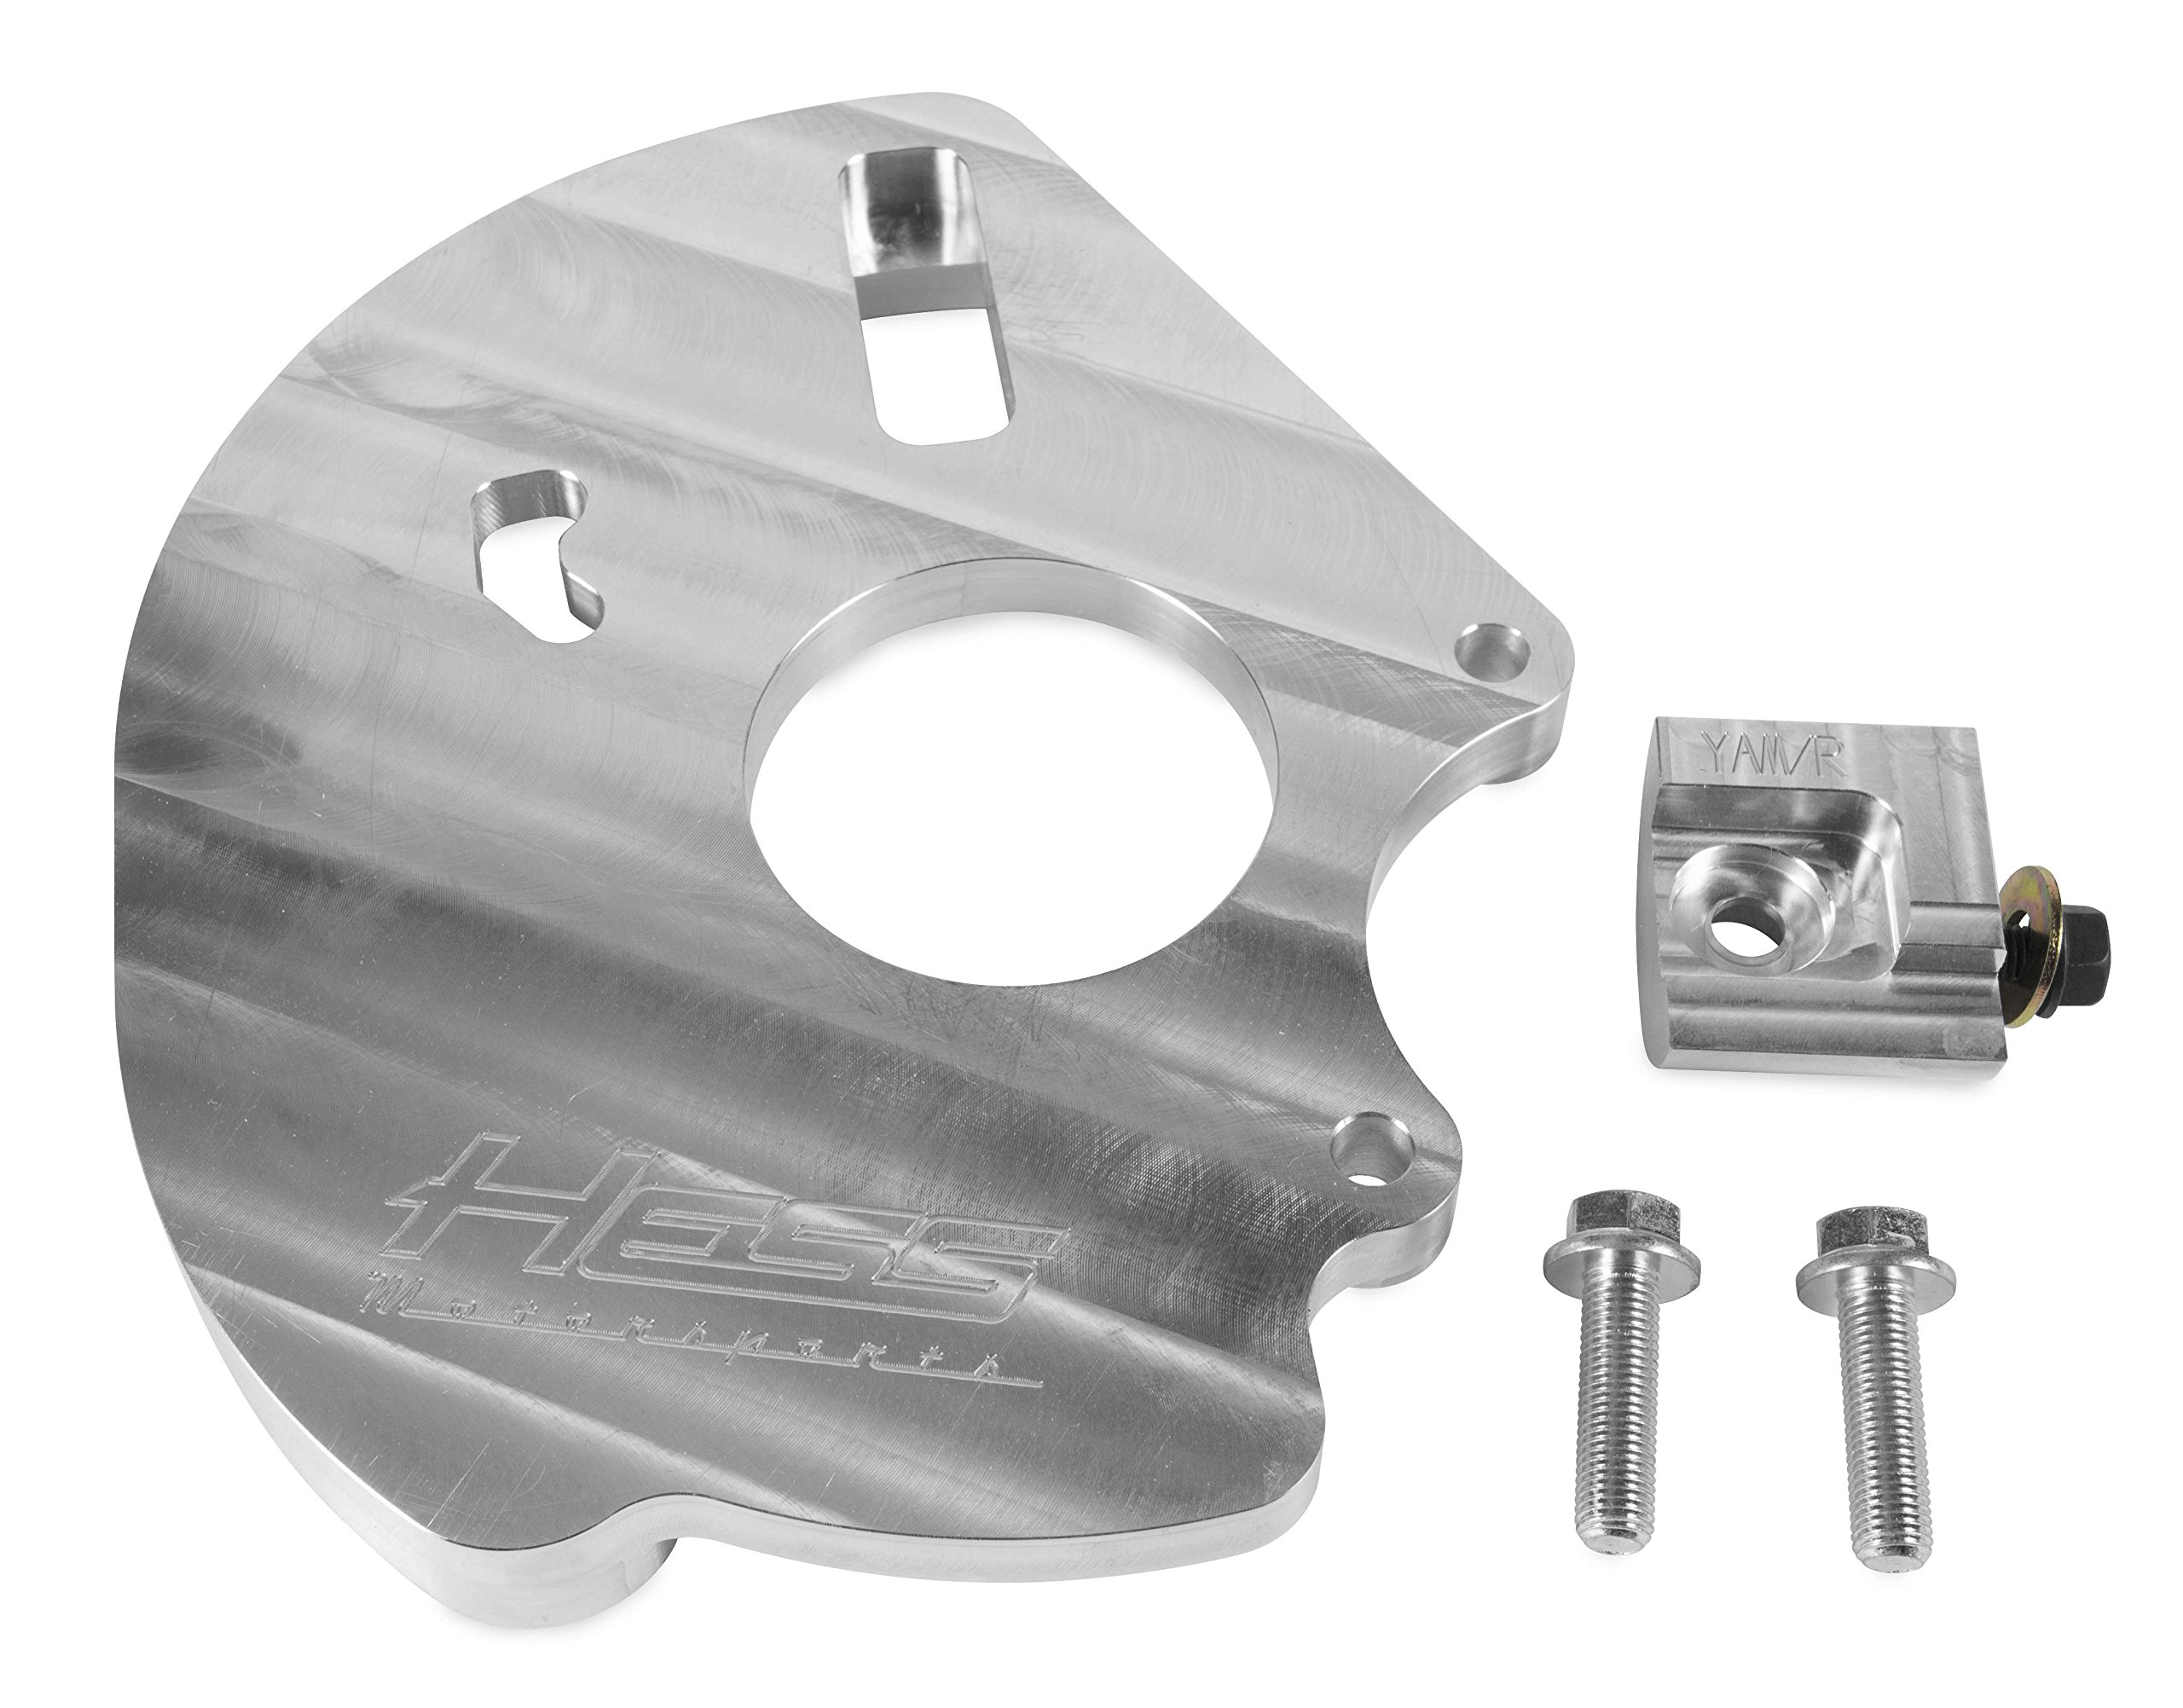 Hess Motorsports 204004 Rotor Guard with Pro Block by Hess Motorsports (Image #1)